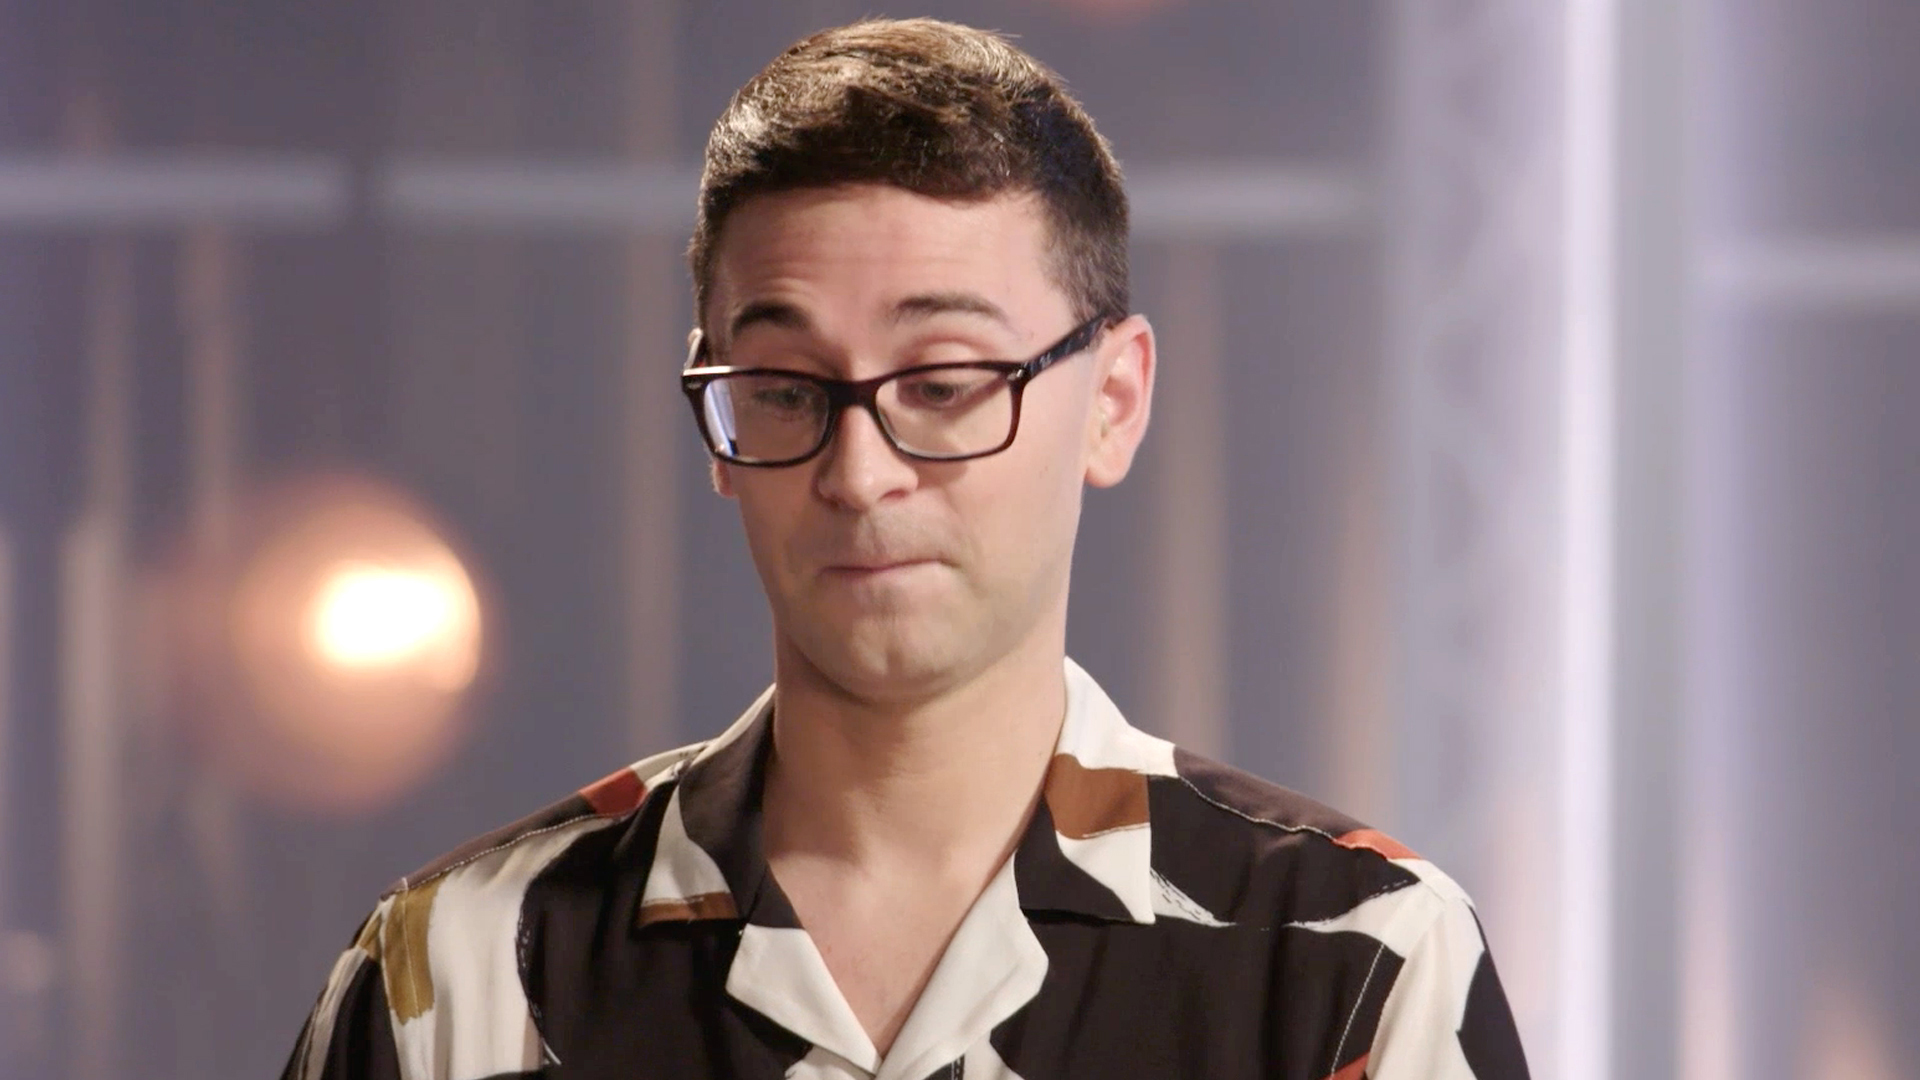 Christian Siriano Addresses That Major Shade Thrown by the Eliminated Designer